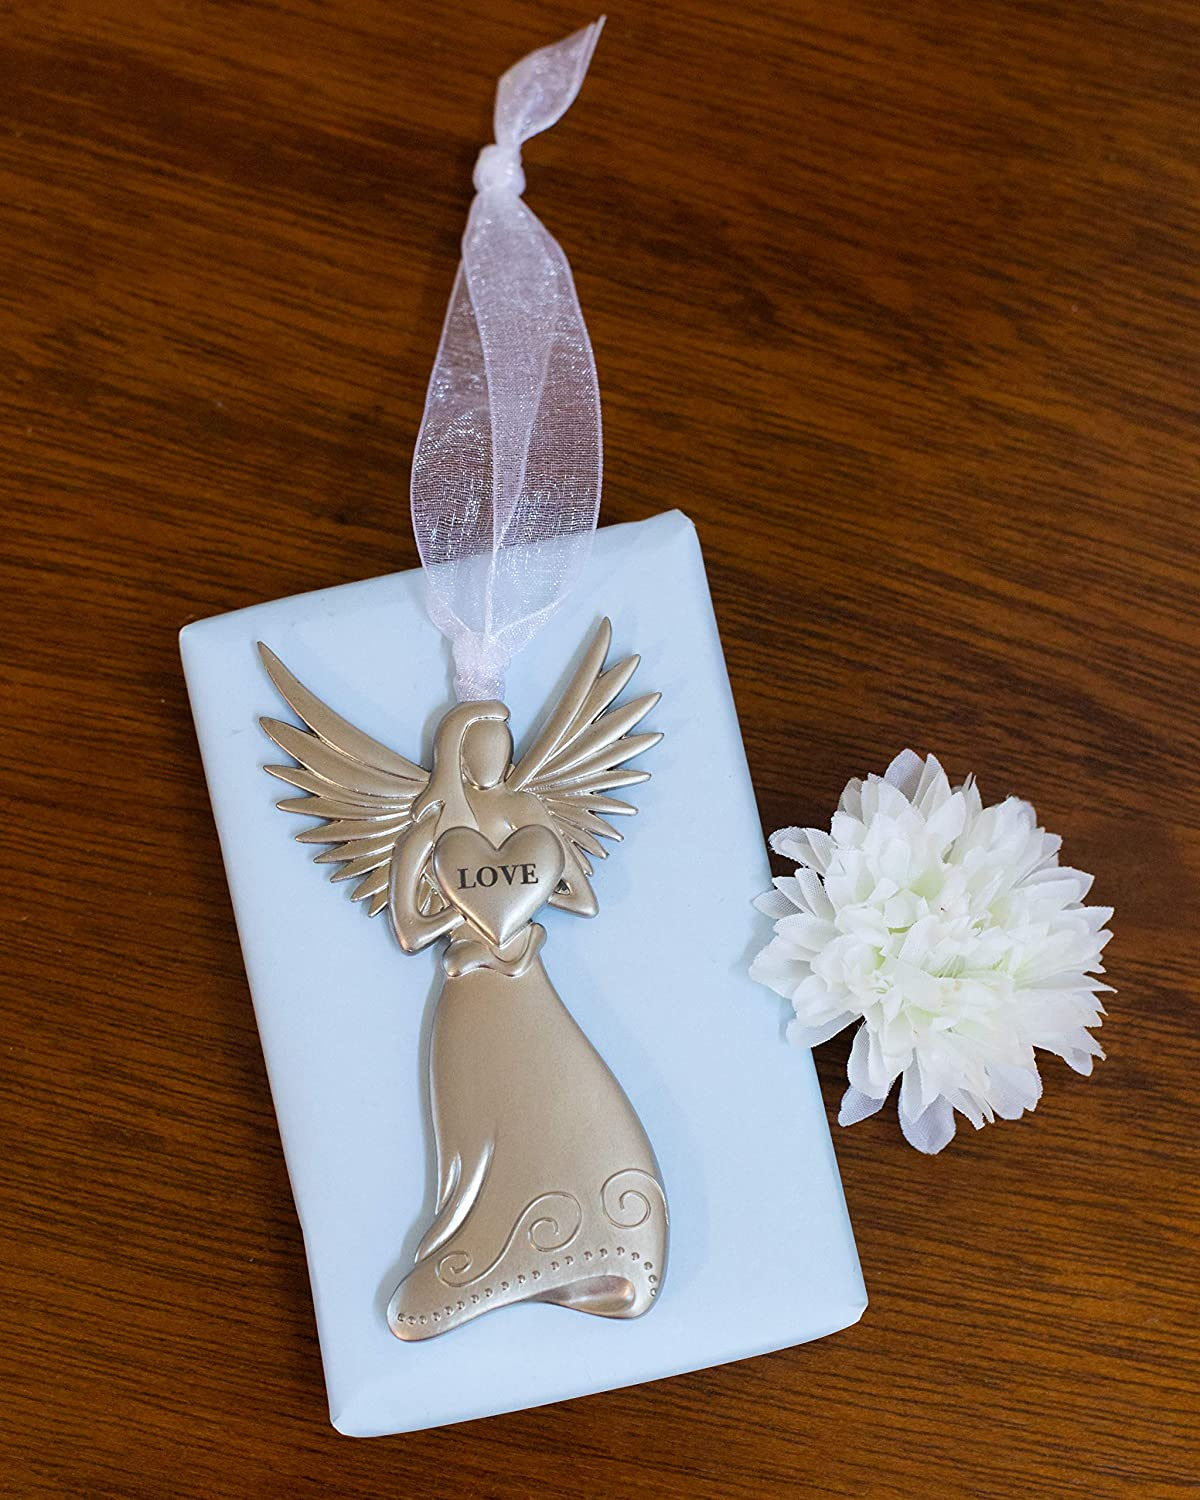 Heartfelt Sympathy Gift for Loss of Loved One Memorial//Remembrance Angel Ornament with Celebrate My Life Poem